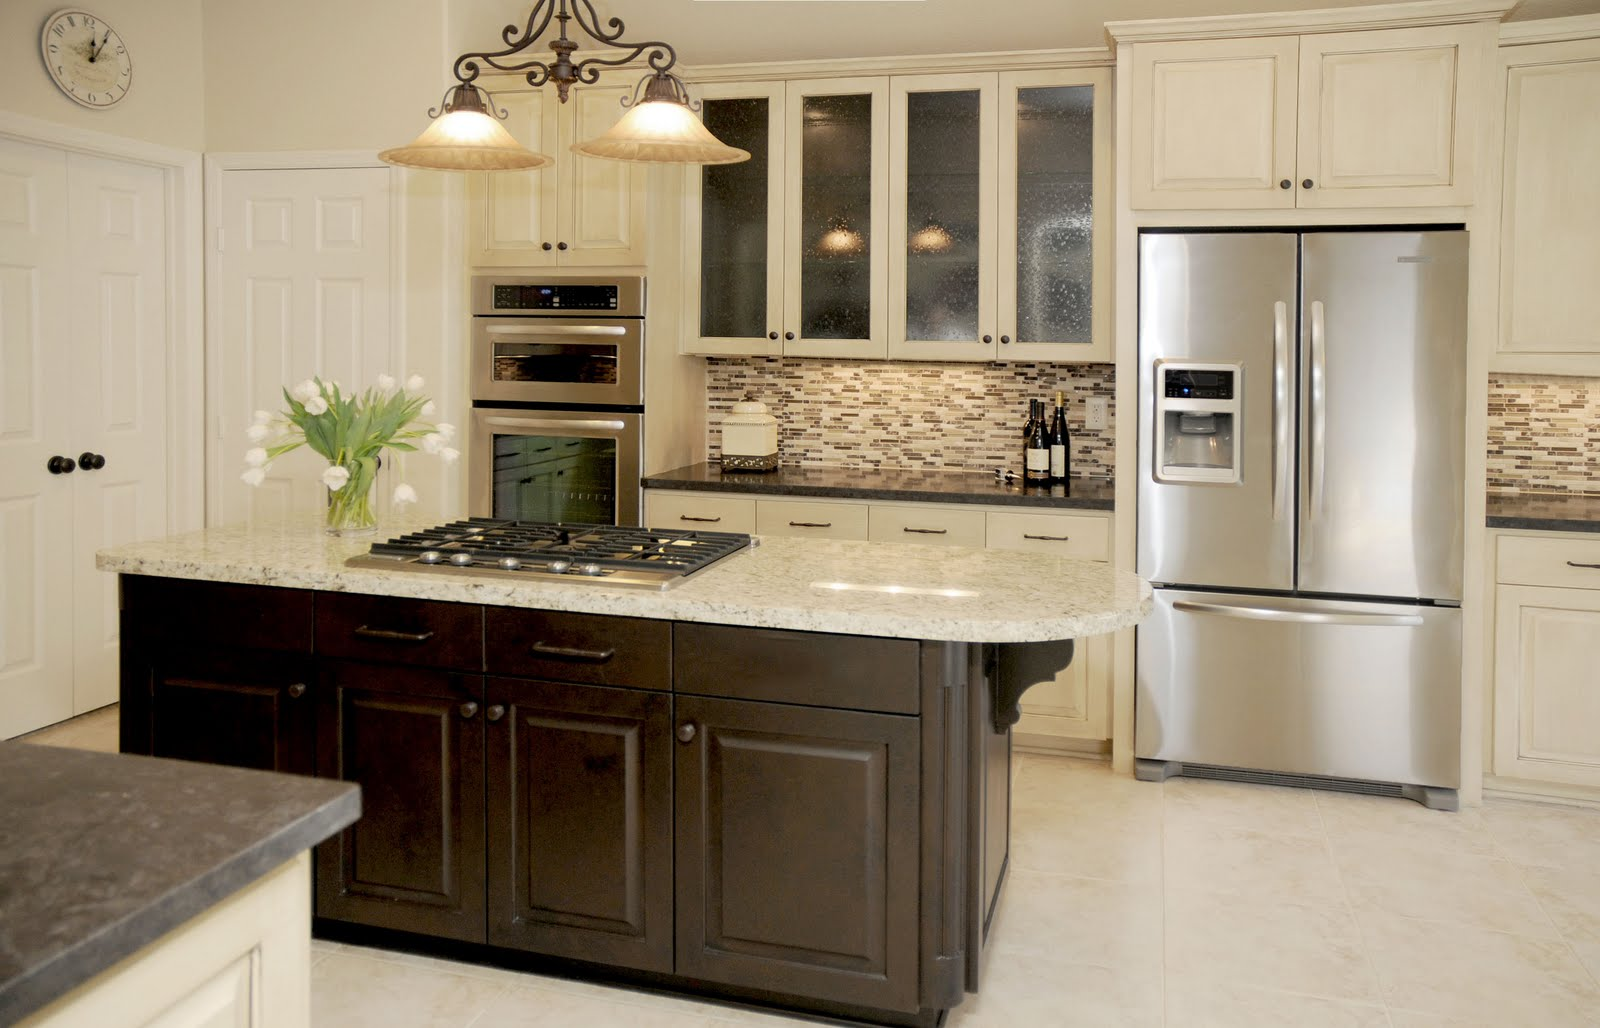 Galley kitchen remodels before and after kitchen design for Kitchen cabinet remodel